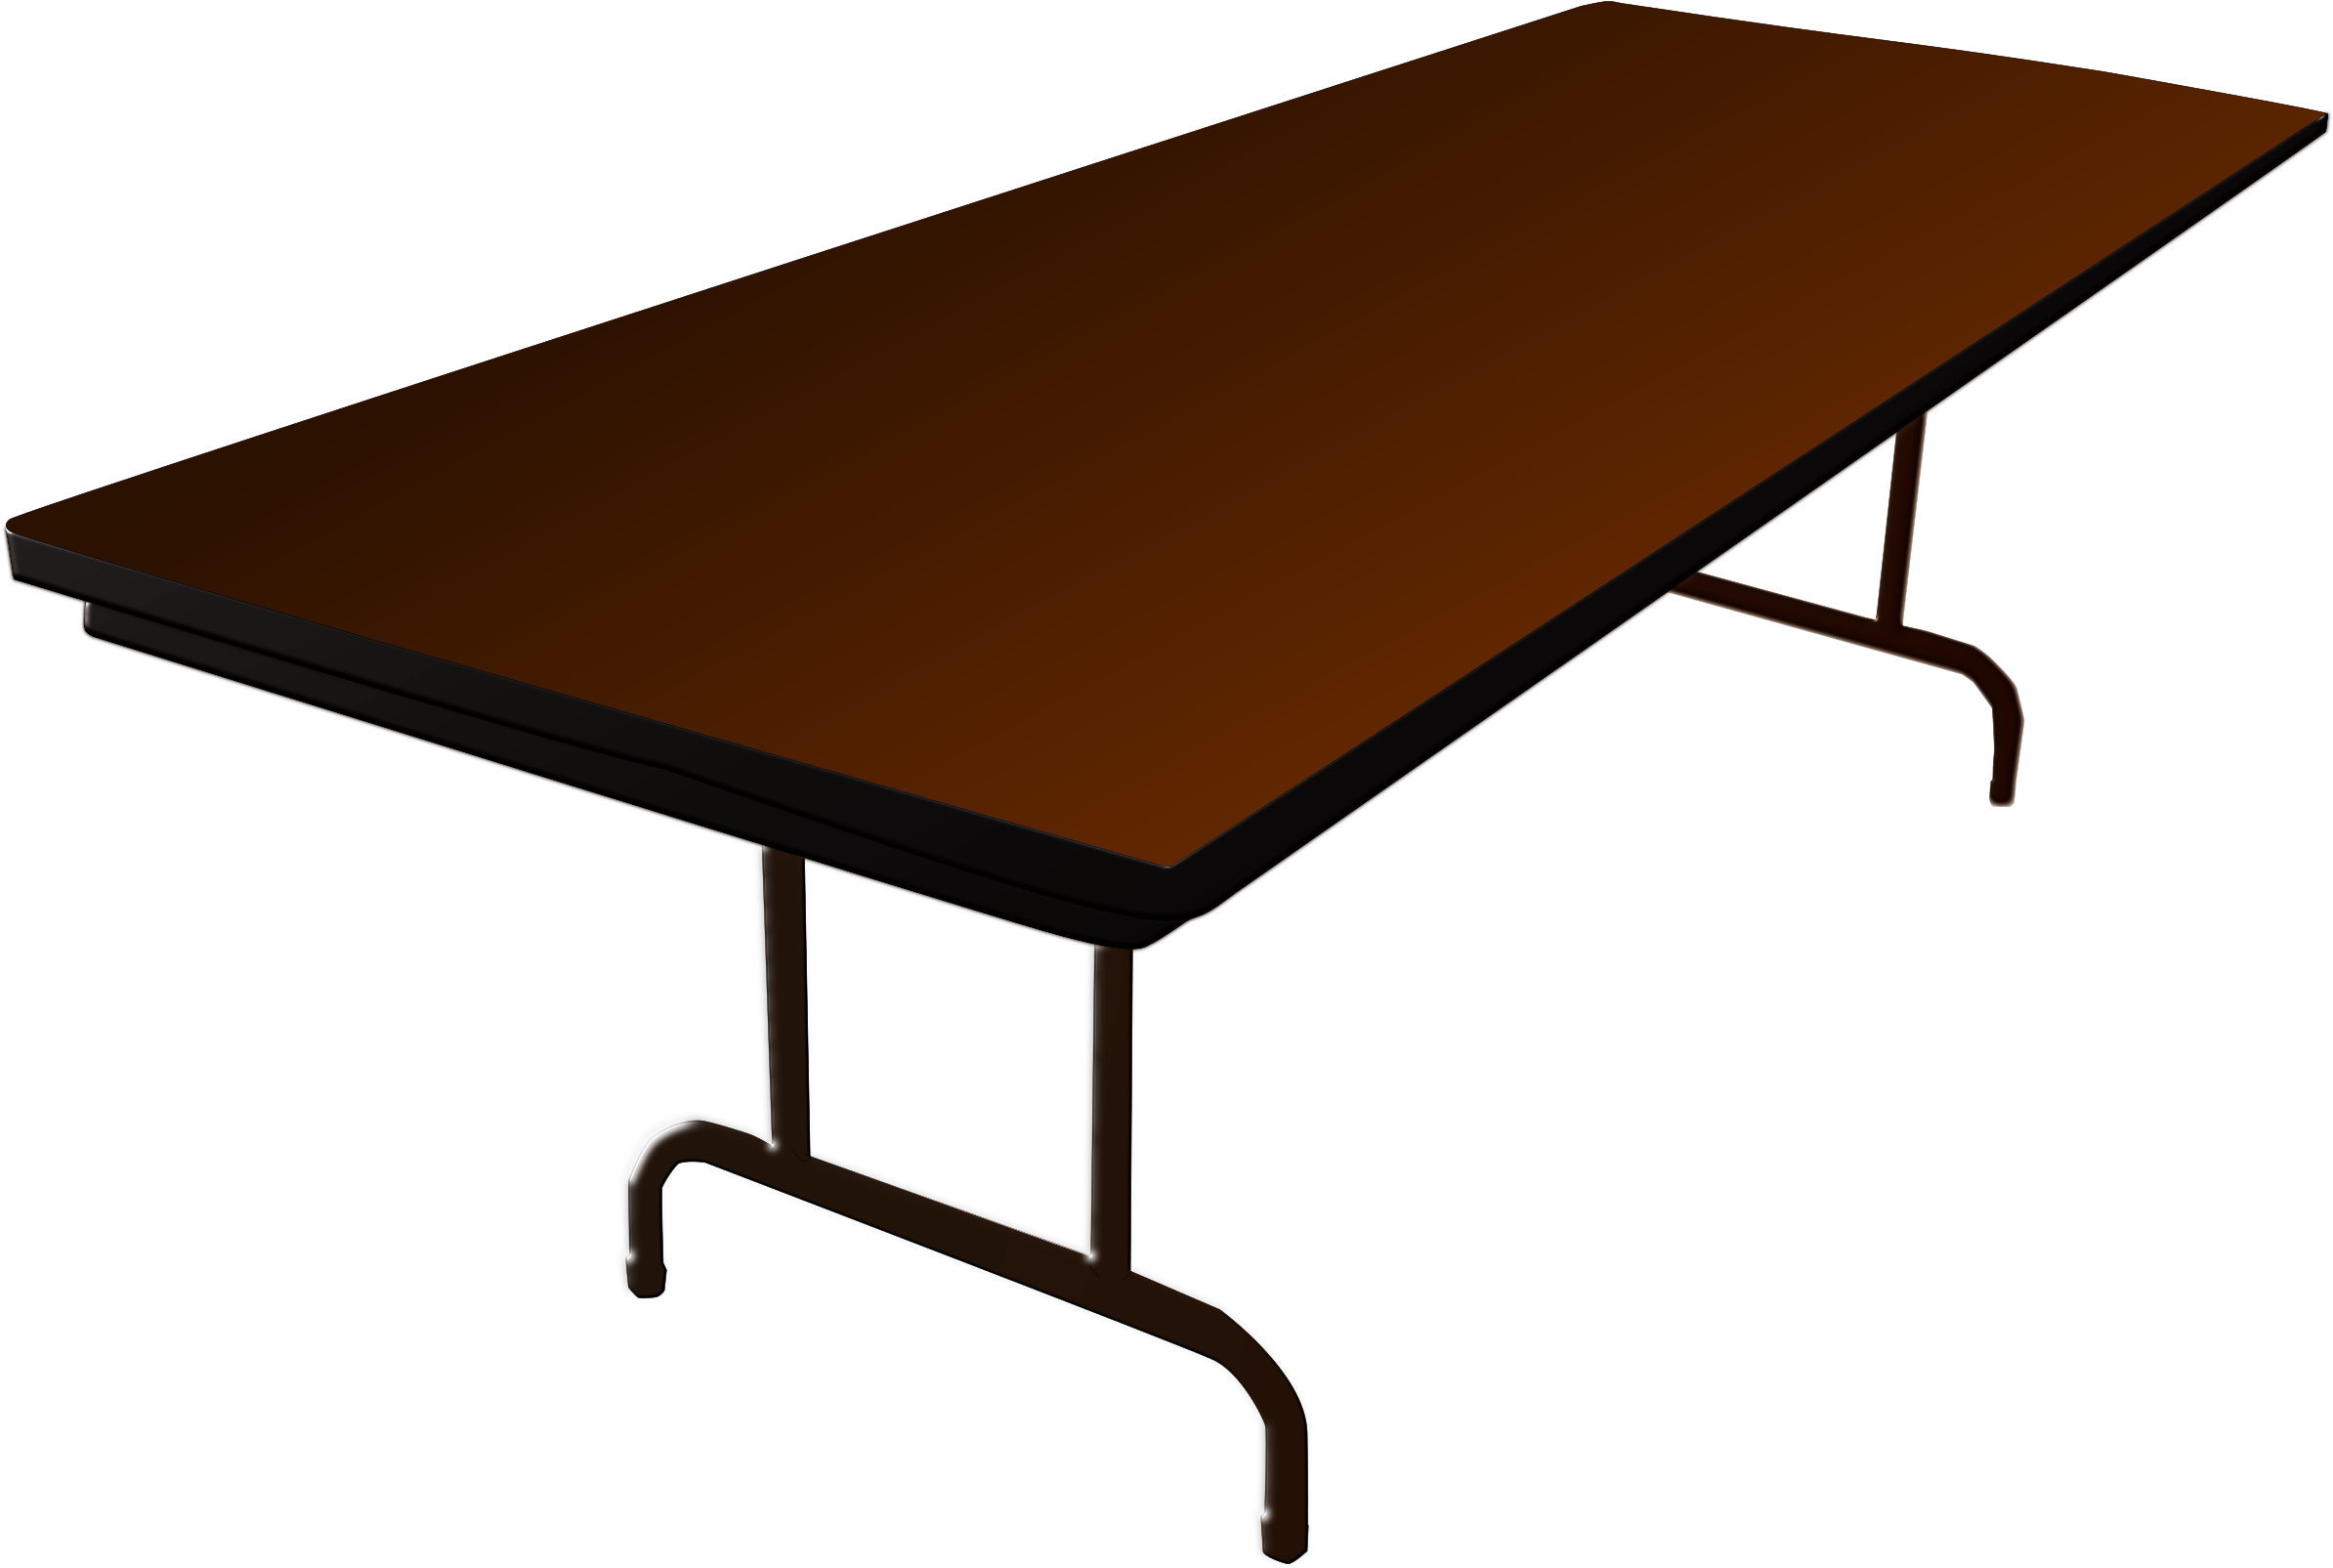 Desk Clipart Long Table Big Table Clip Art Full Size Png Download Seekpng